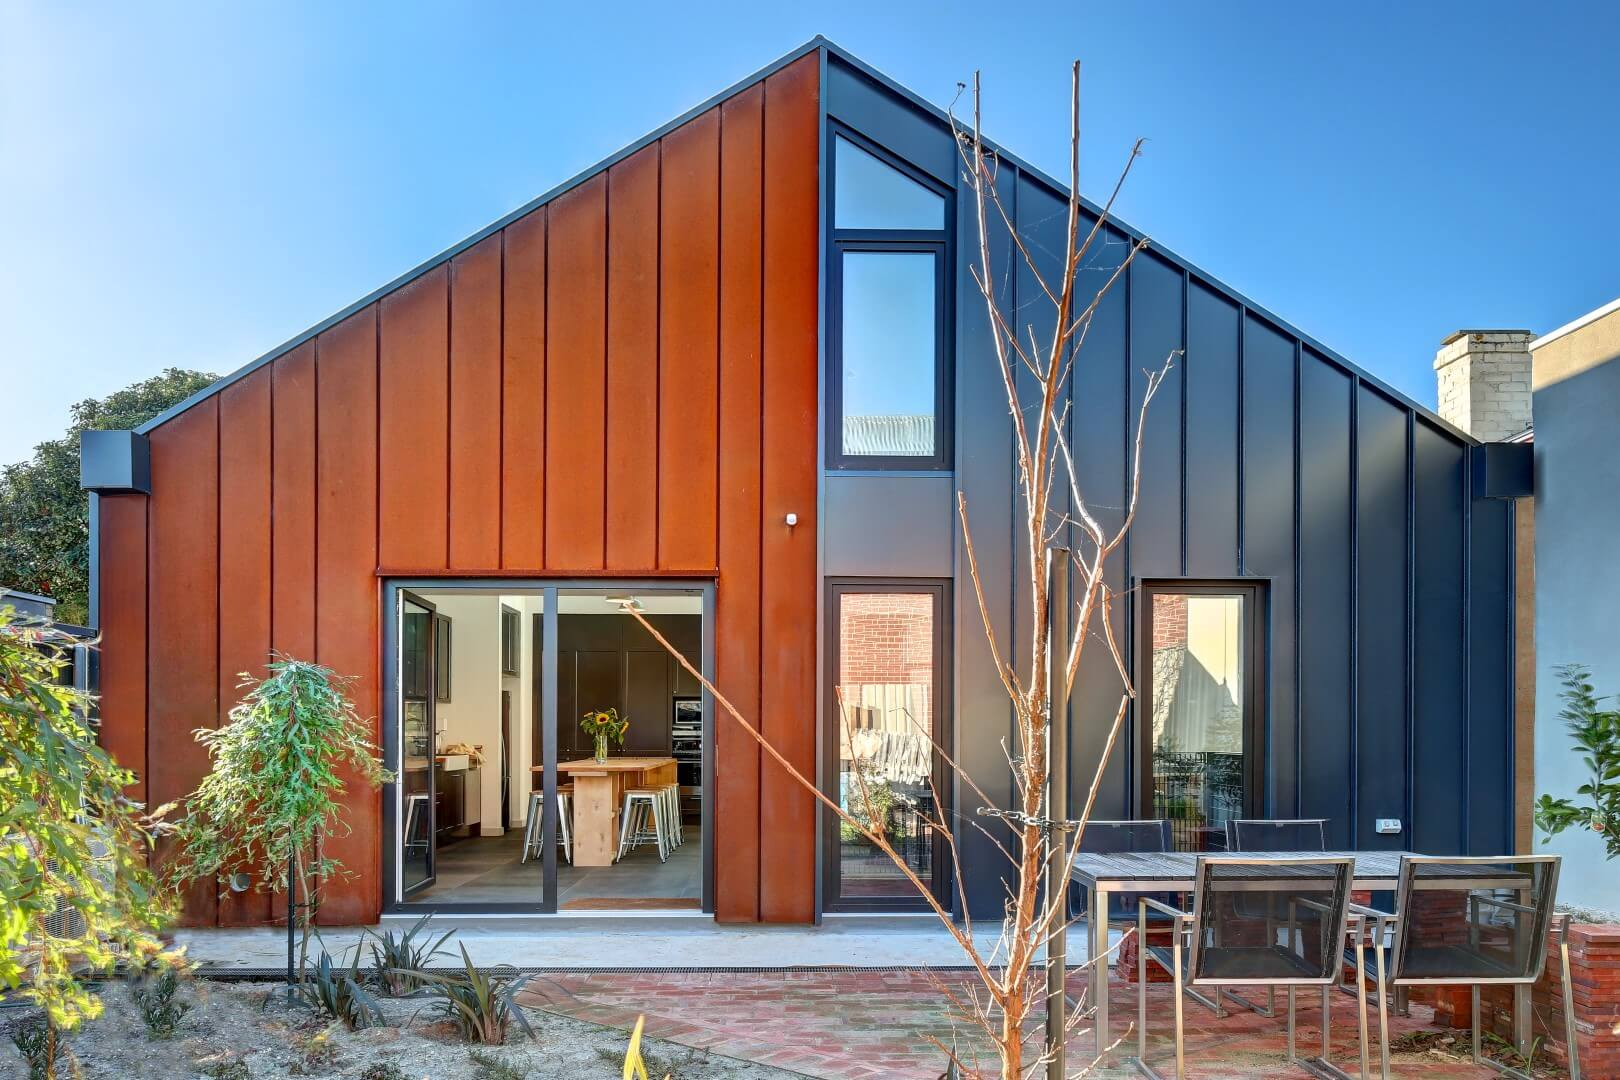 8 2 Star Cottage with Contemporary Addition - Sustainable House Day